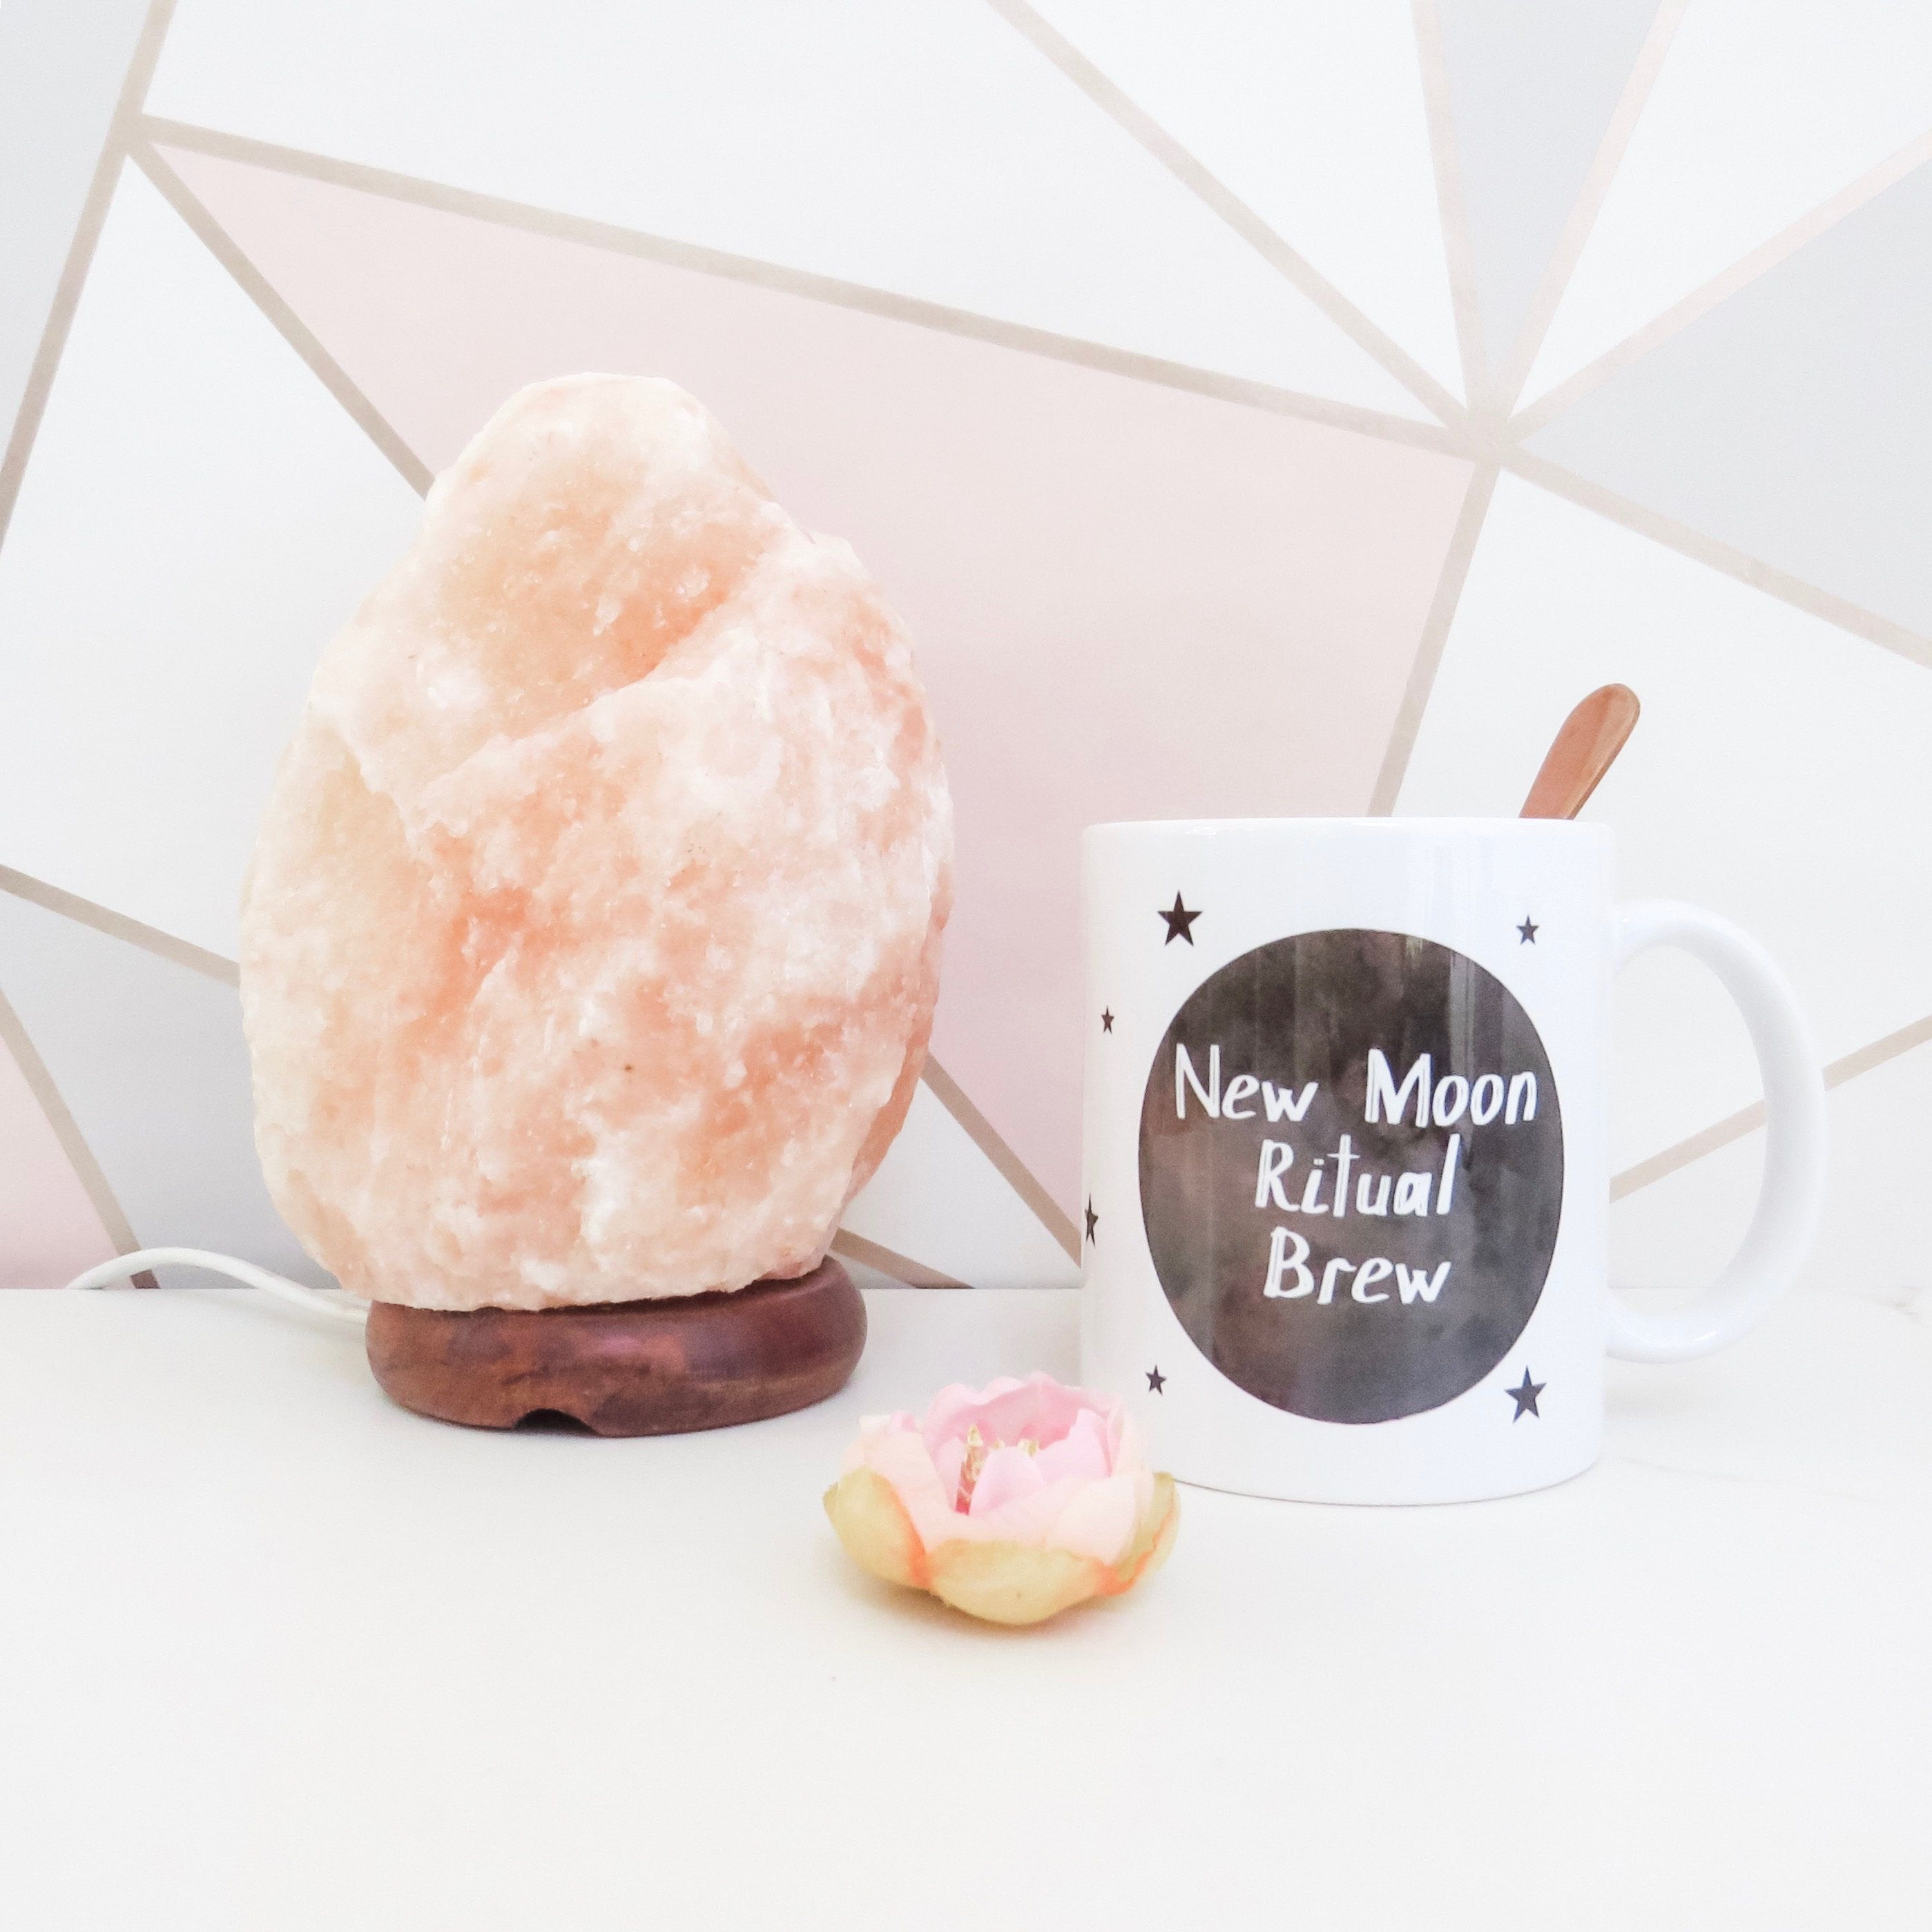 New Moon Ritual Brew Quote Ceramic Mug #newmoonritual